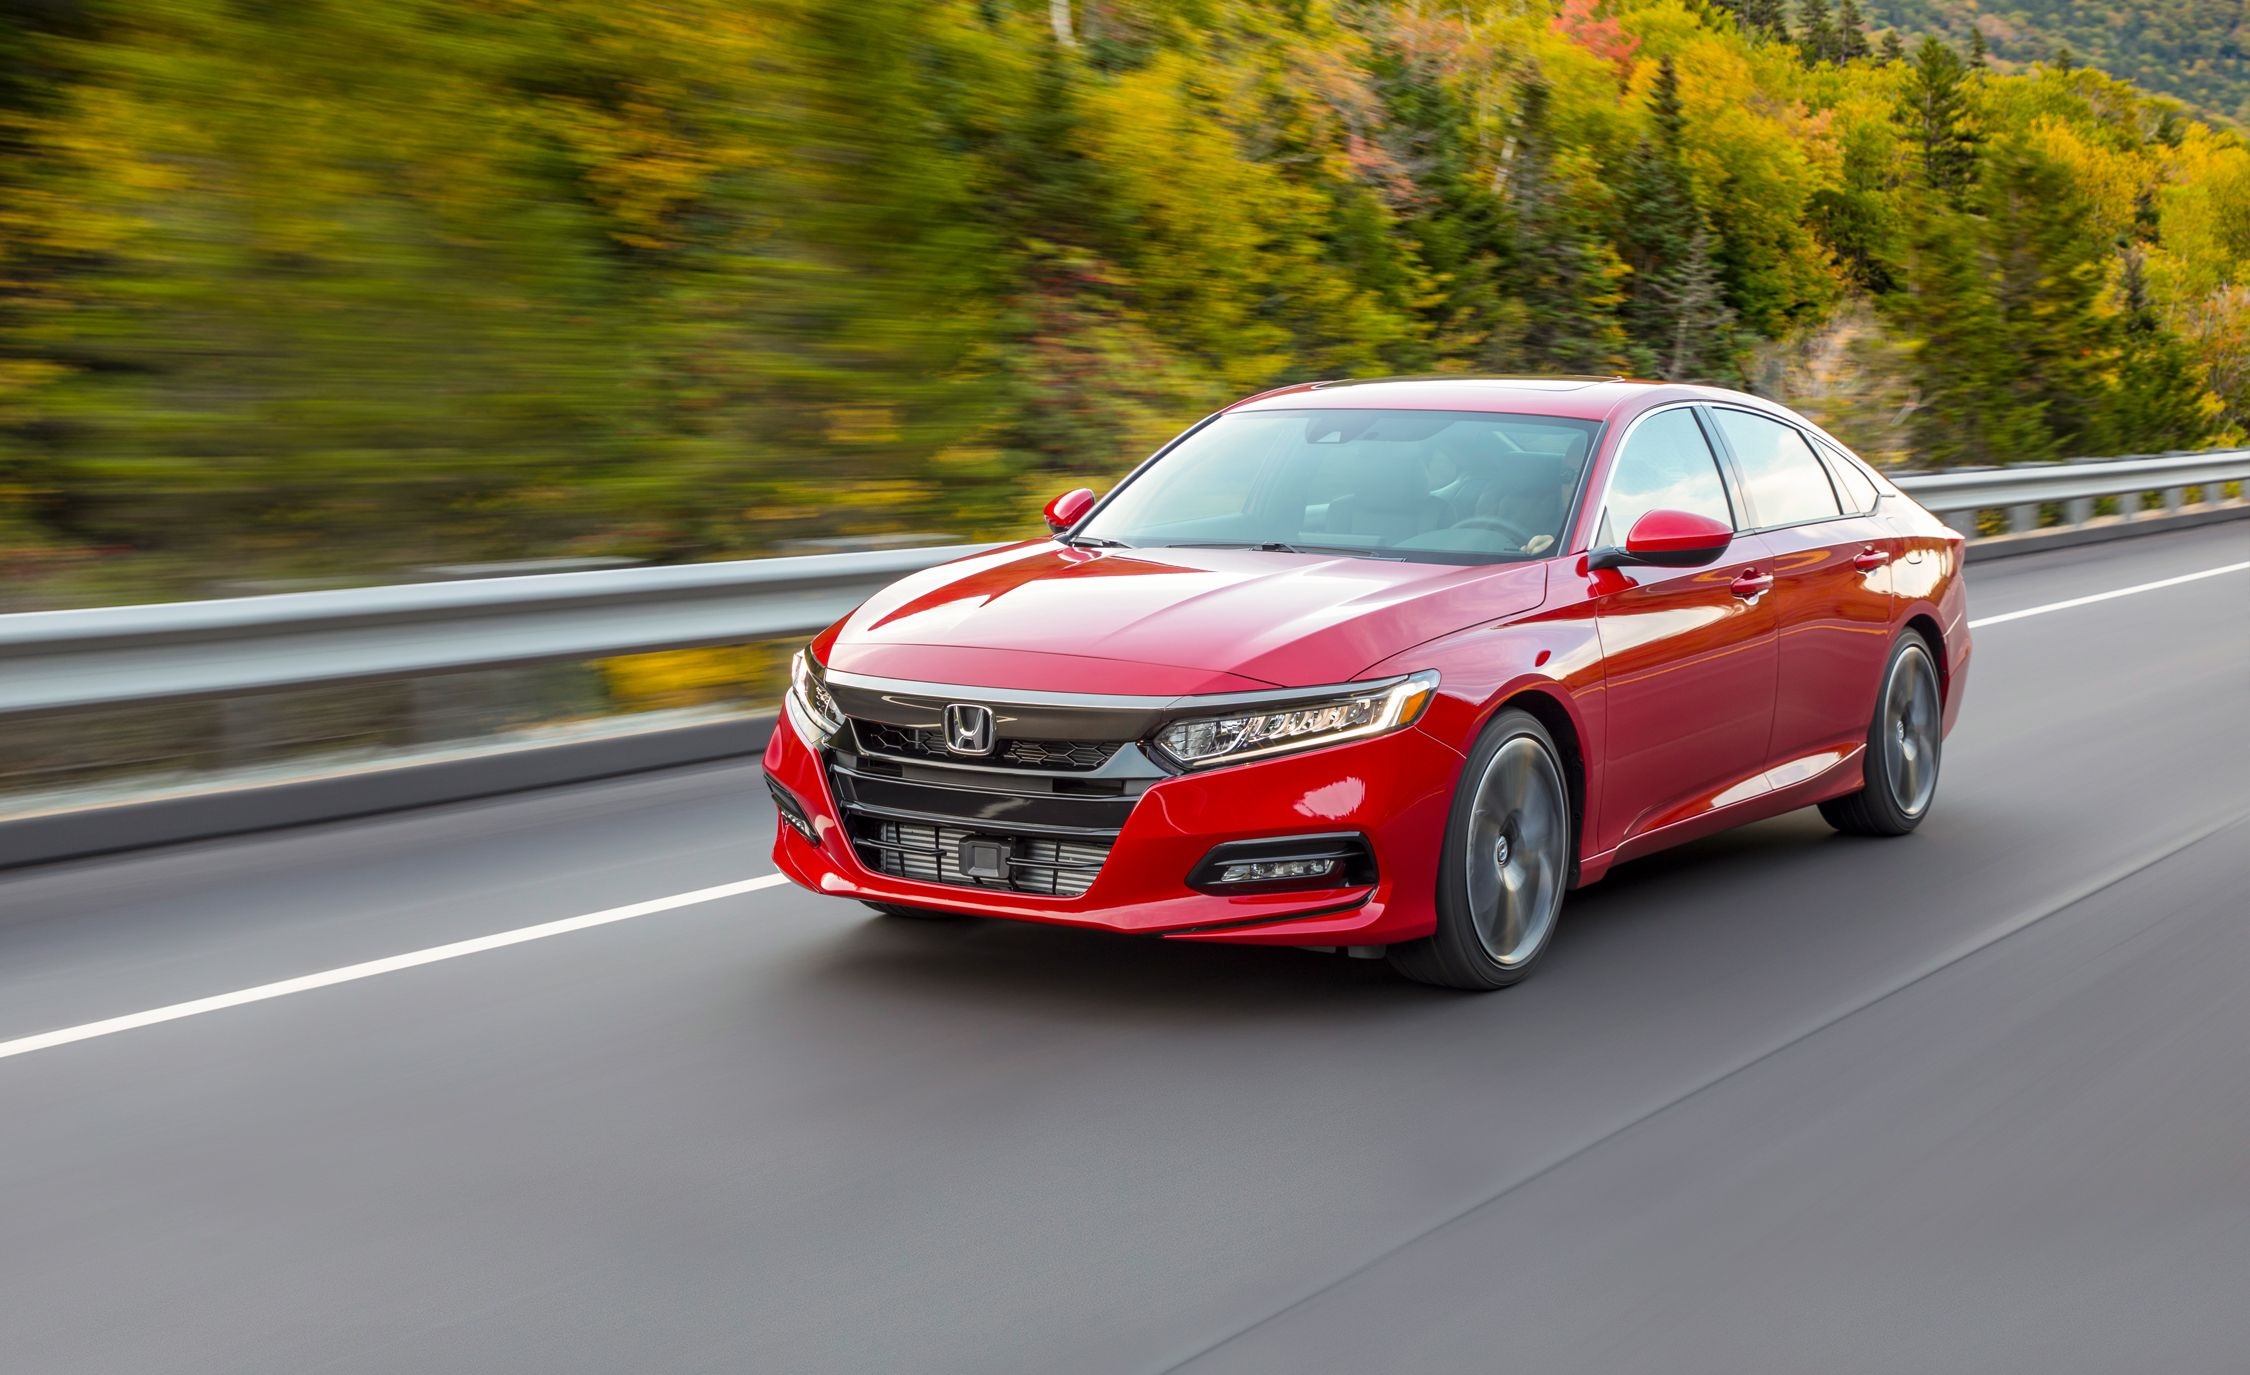 2018 honda accord first drive review car and driver rh caranddriver com 1999 Honda Accord Custom 1980 honda accord special edition